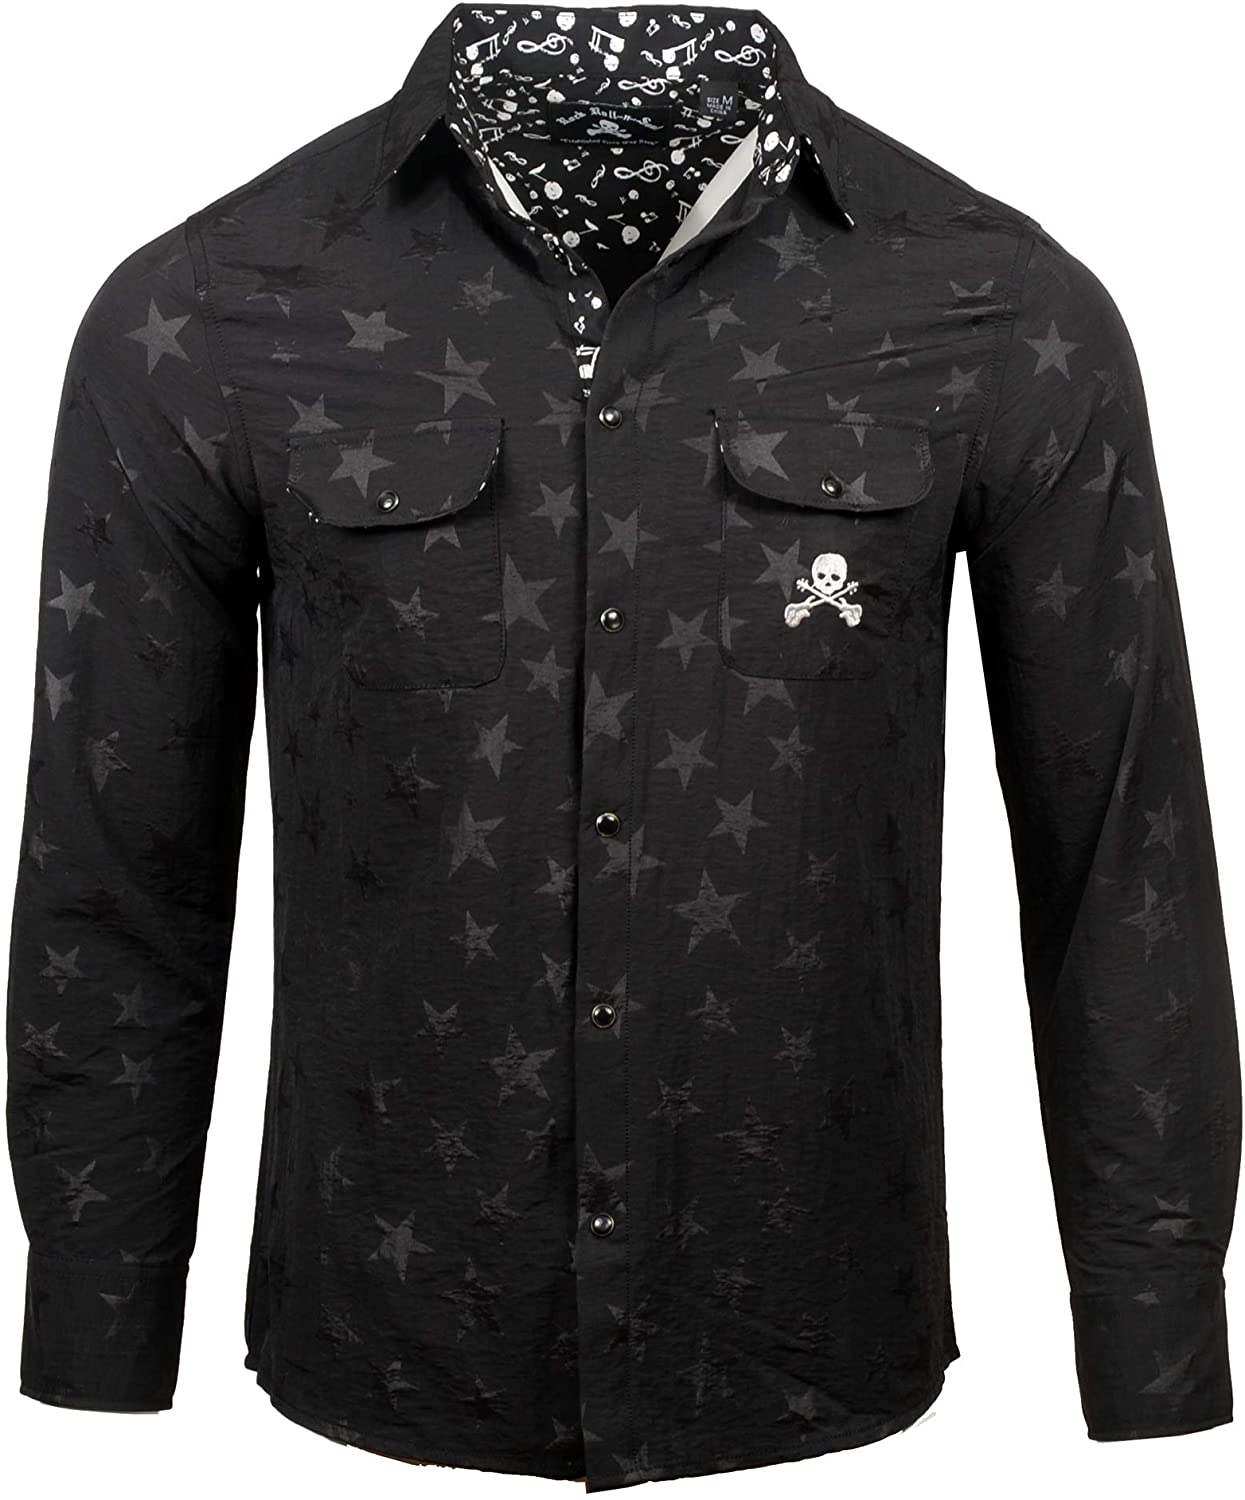 Rock Roll n Soul Men's Rock Shop Ghost Star Patterned Long Sleeve Button-Up Shirt